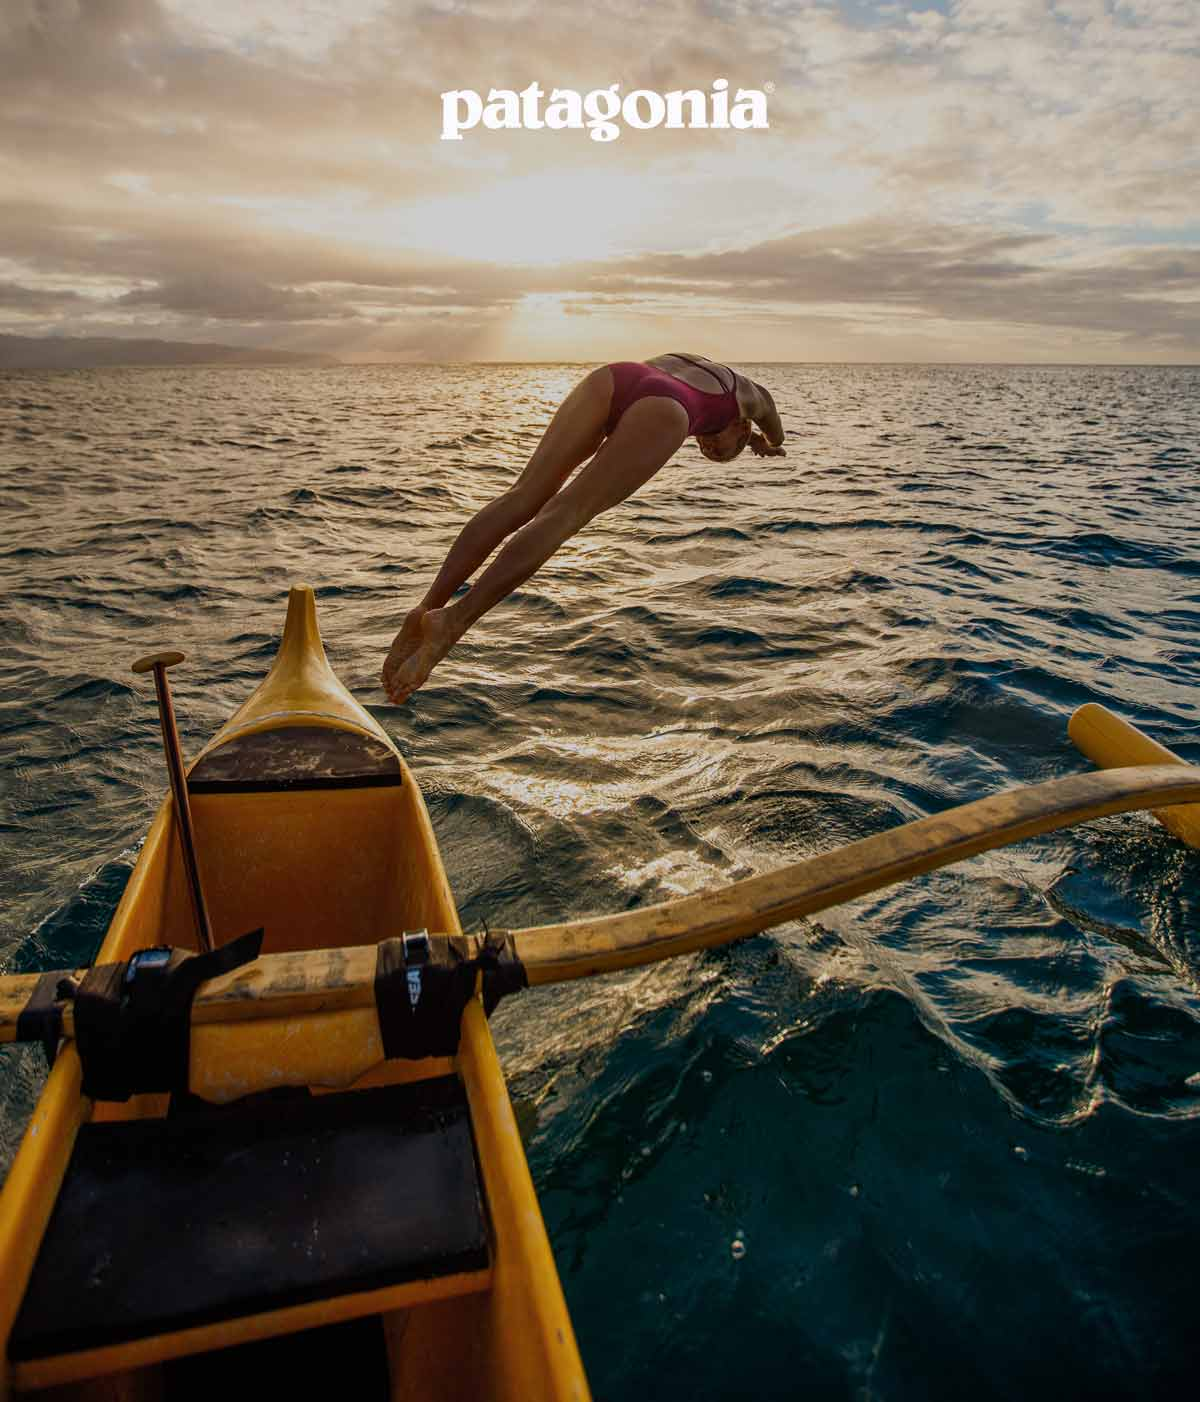 A person dives into the ocean from an outrigger canoe.